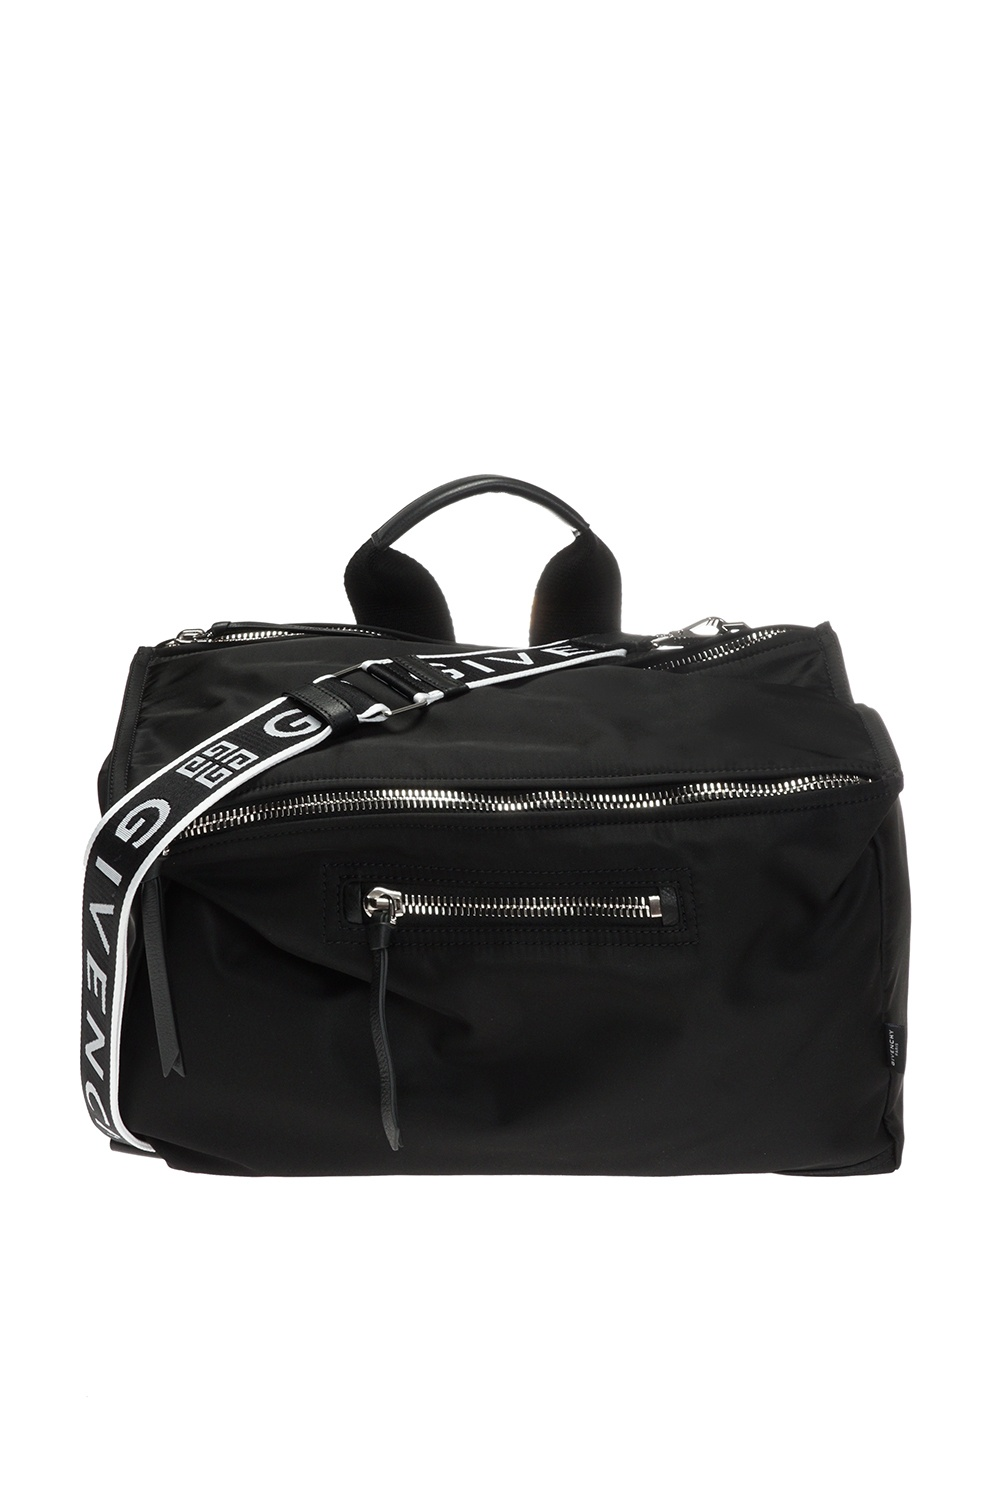 Givenchy Shoulder 'Pandora' bag